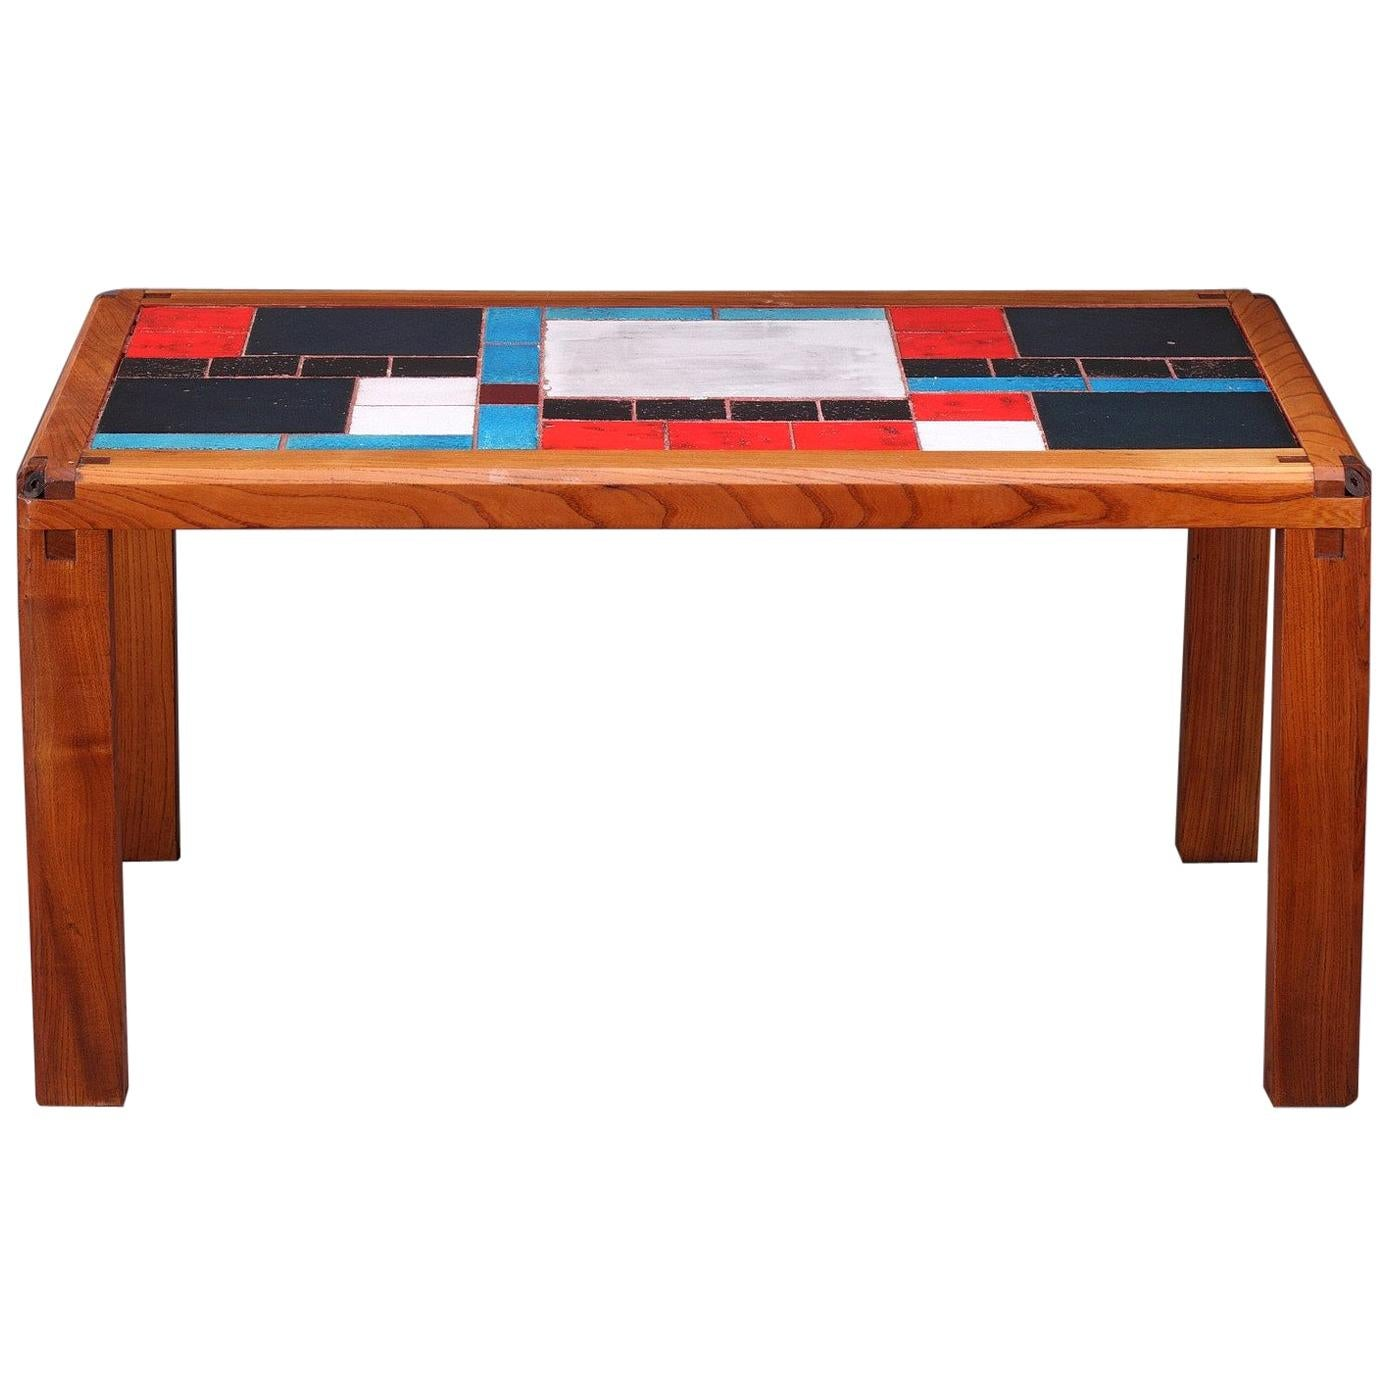 1960s Coffee Table in Elm and Ceramic by Pierre Chapo